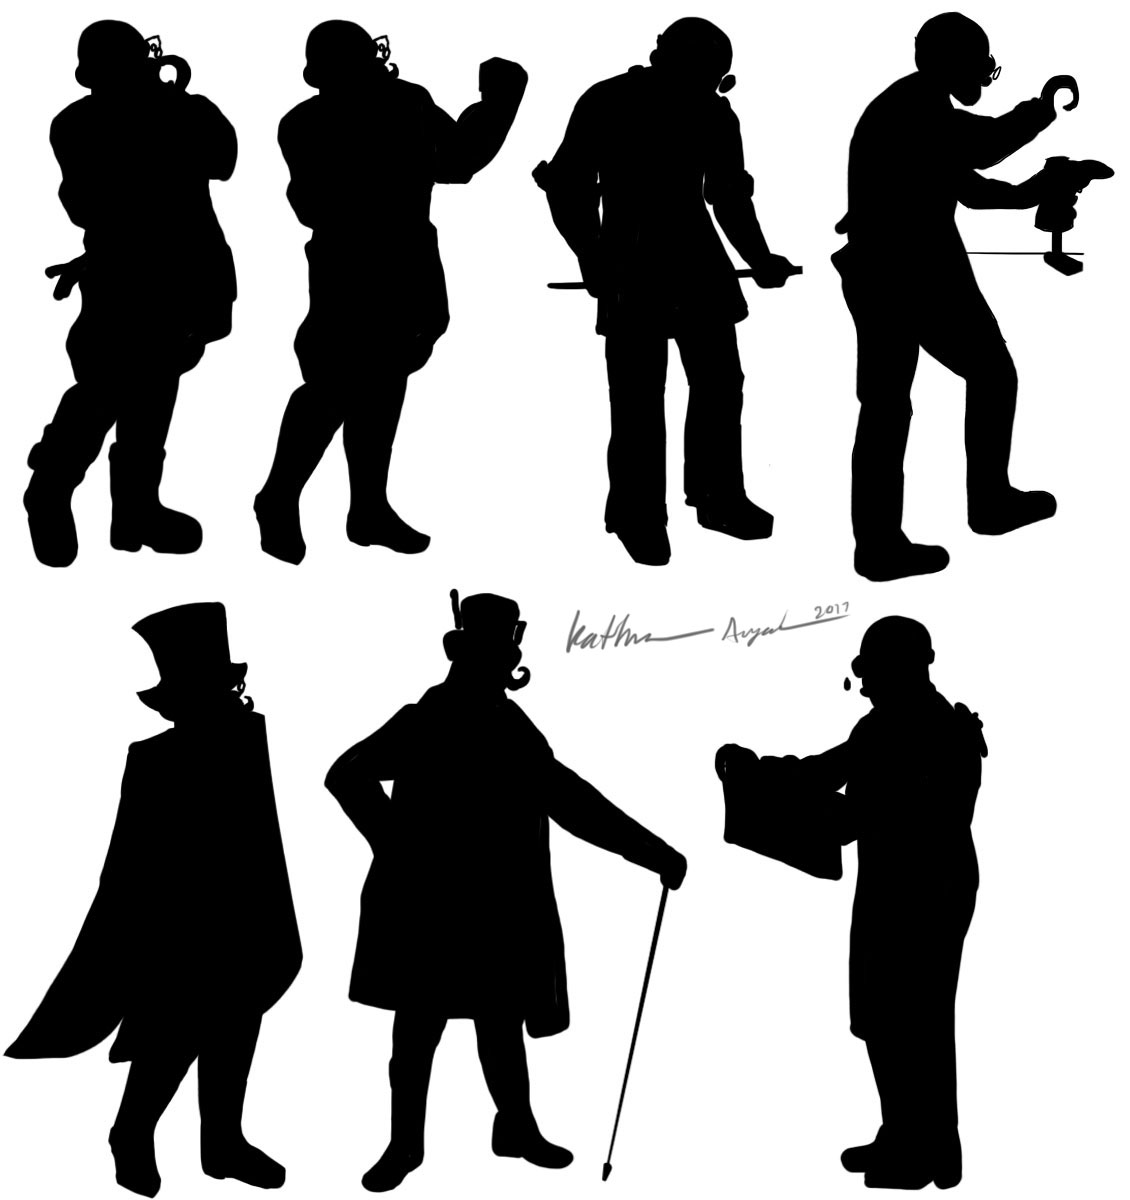 More Shoemaker Character Silhouettes